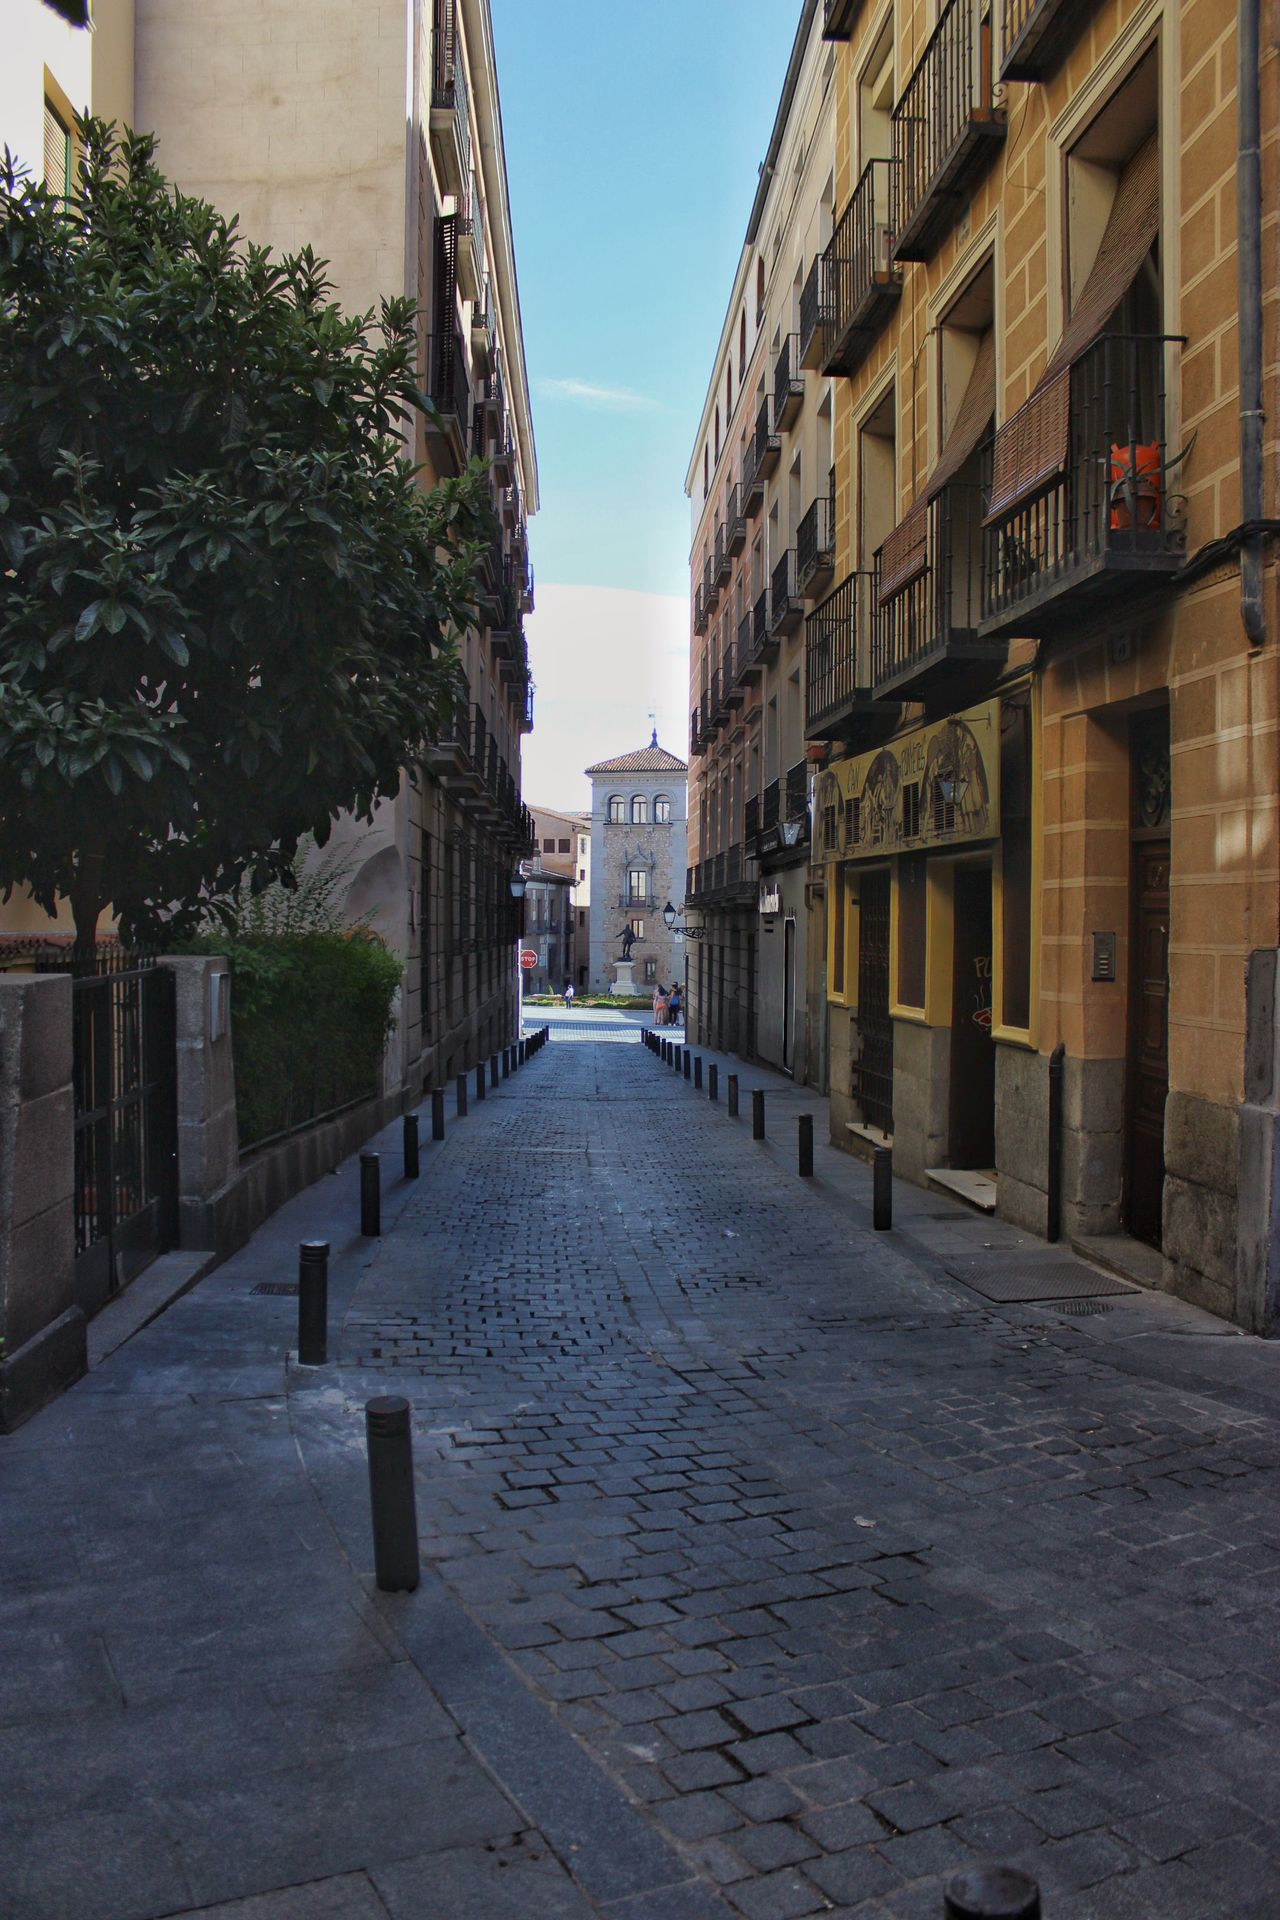 Madrid SPAIN Jorge L. Taking Photos Canon EOS 600D DSLR Españoles Y Sus Fotos Architecture Street Cityscapes No People Perspective Street Photography